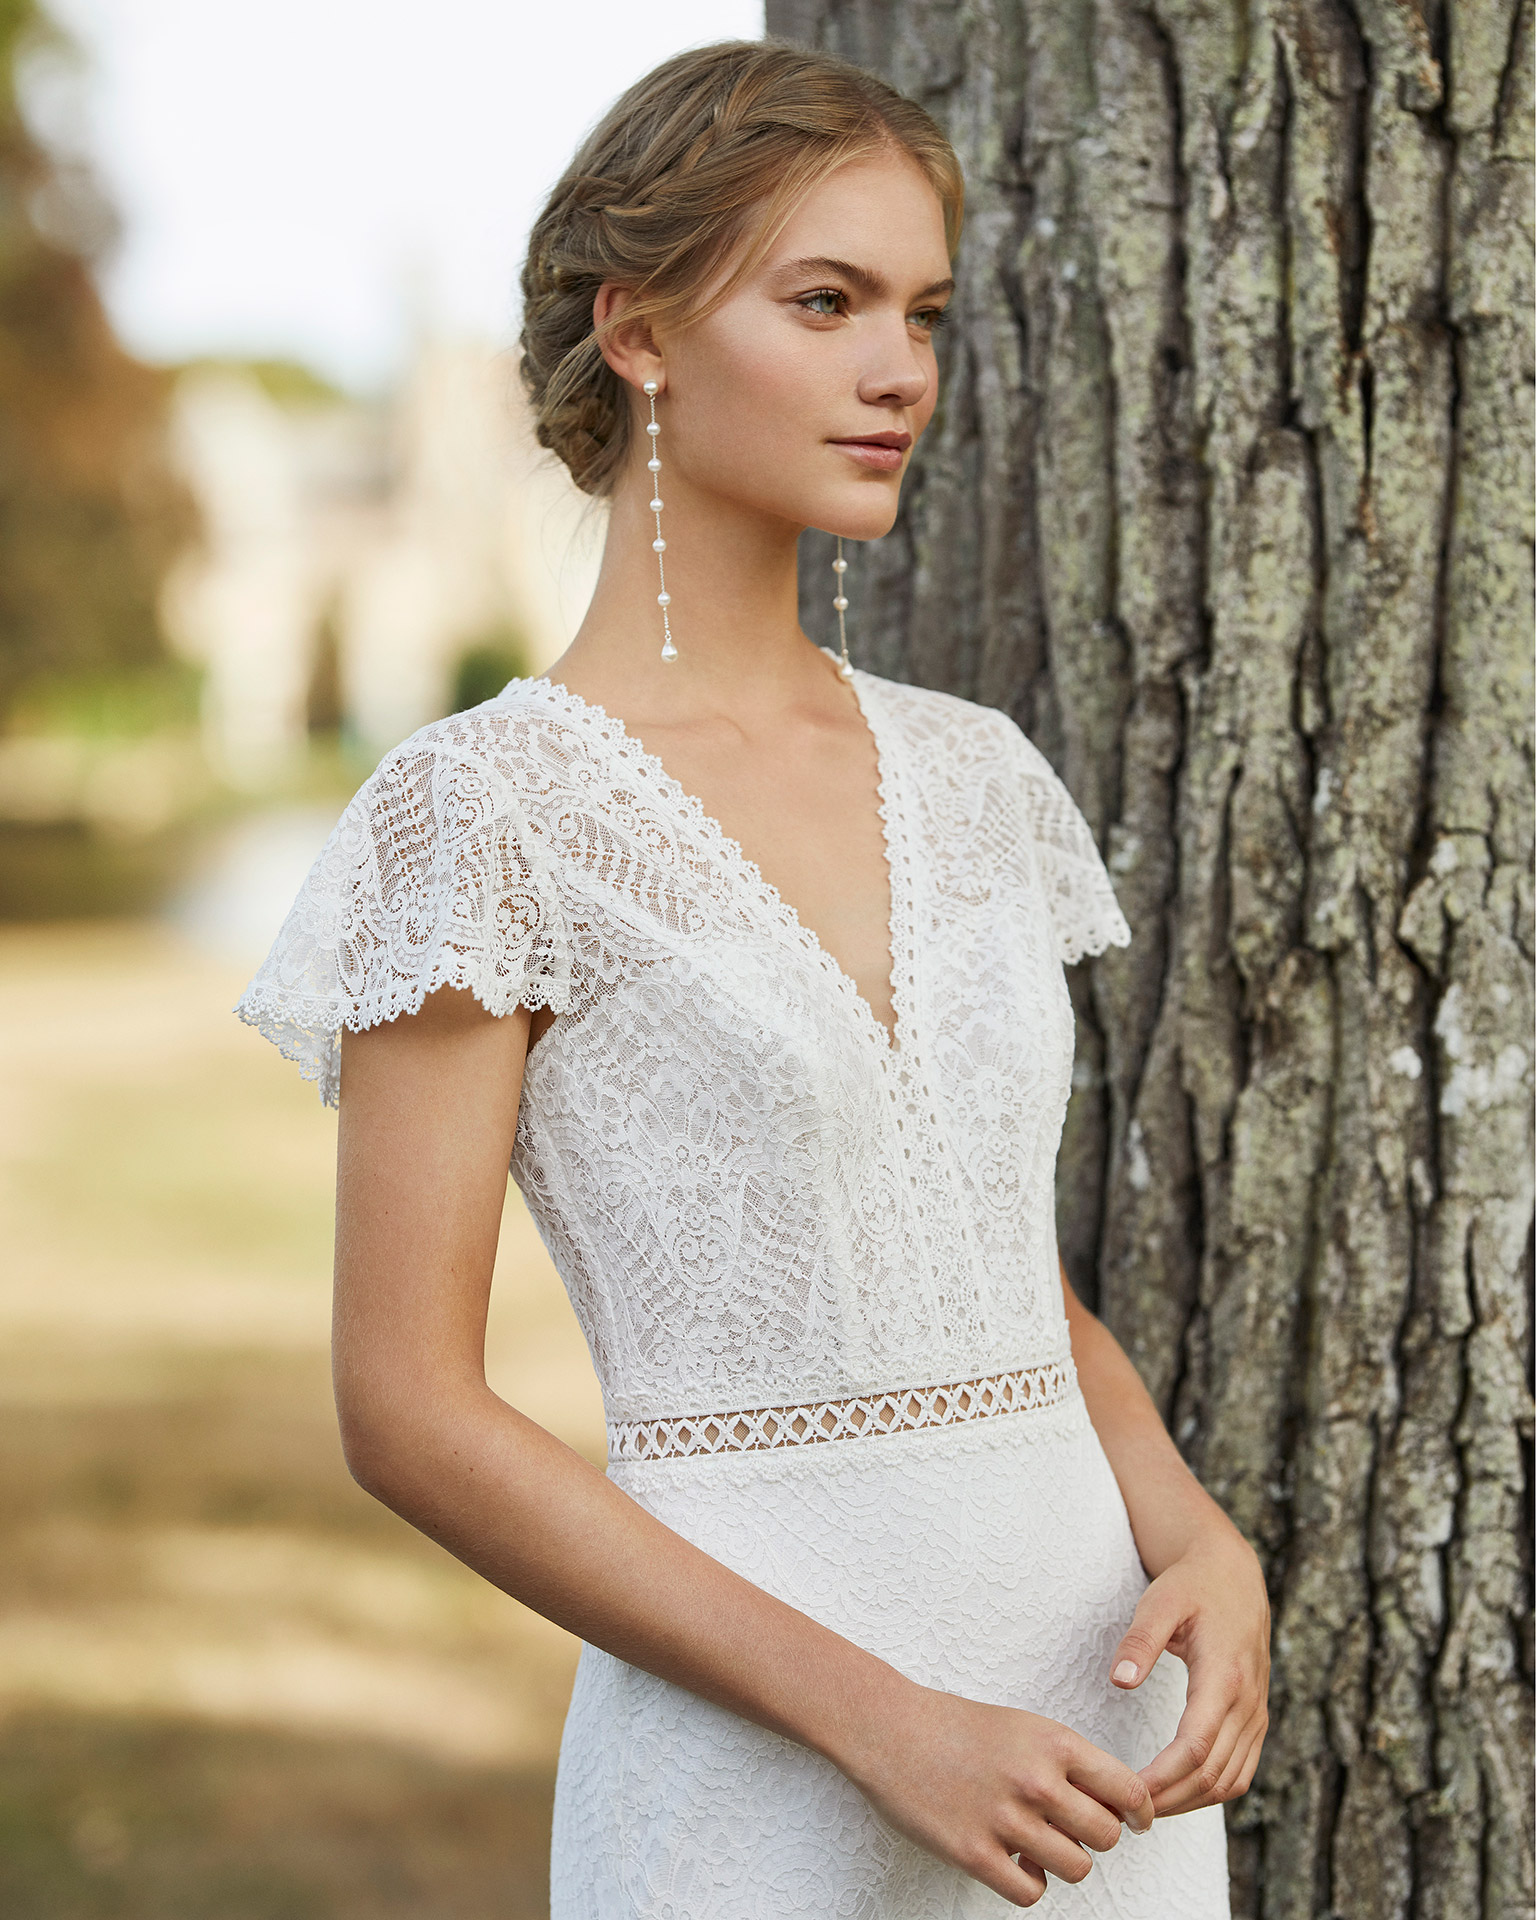 Lace wedding dress. V-neckline in lace, short sleeves, beaded lace belt and lace back with buttons. 2021 ALMANOVIA Collection.